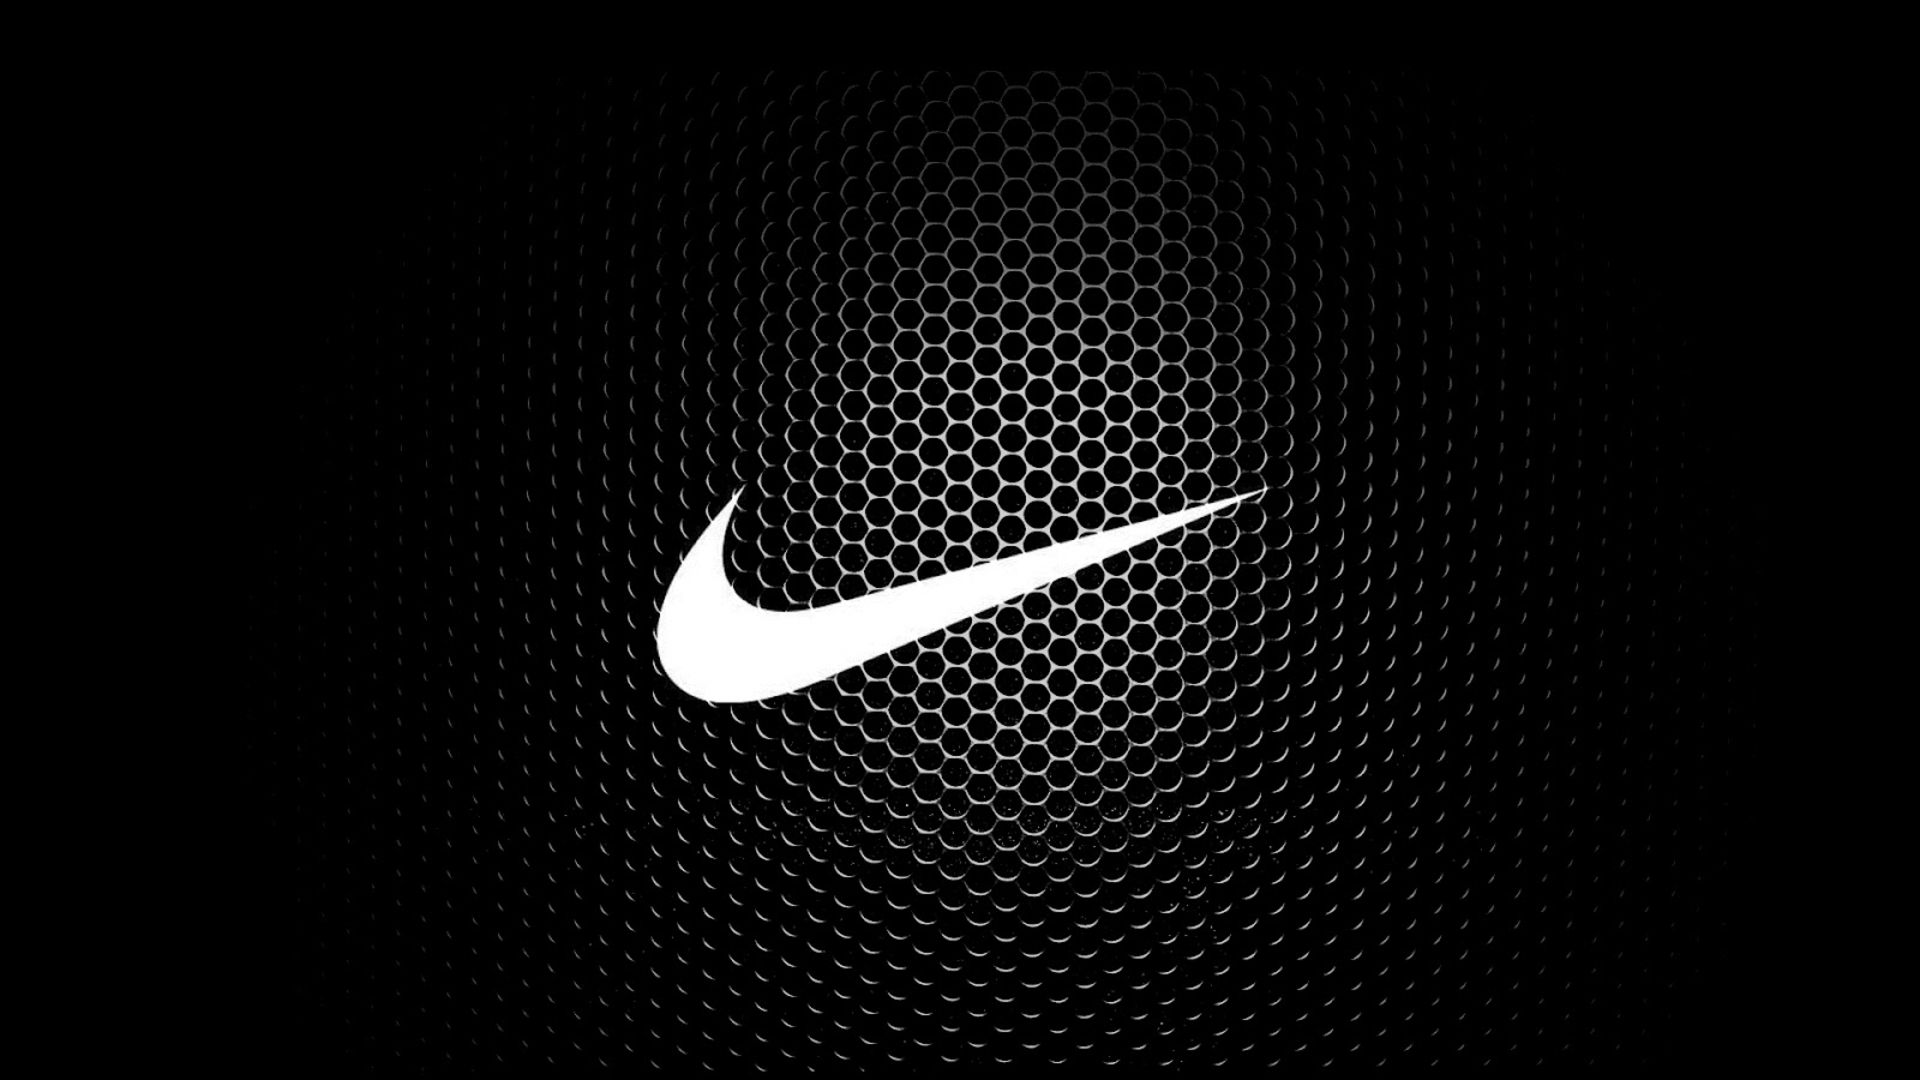 Wallpaper HD Nike